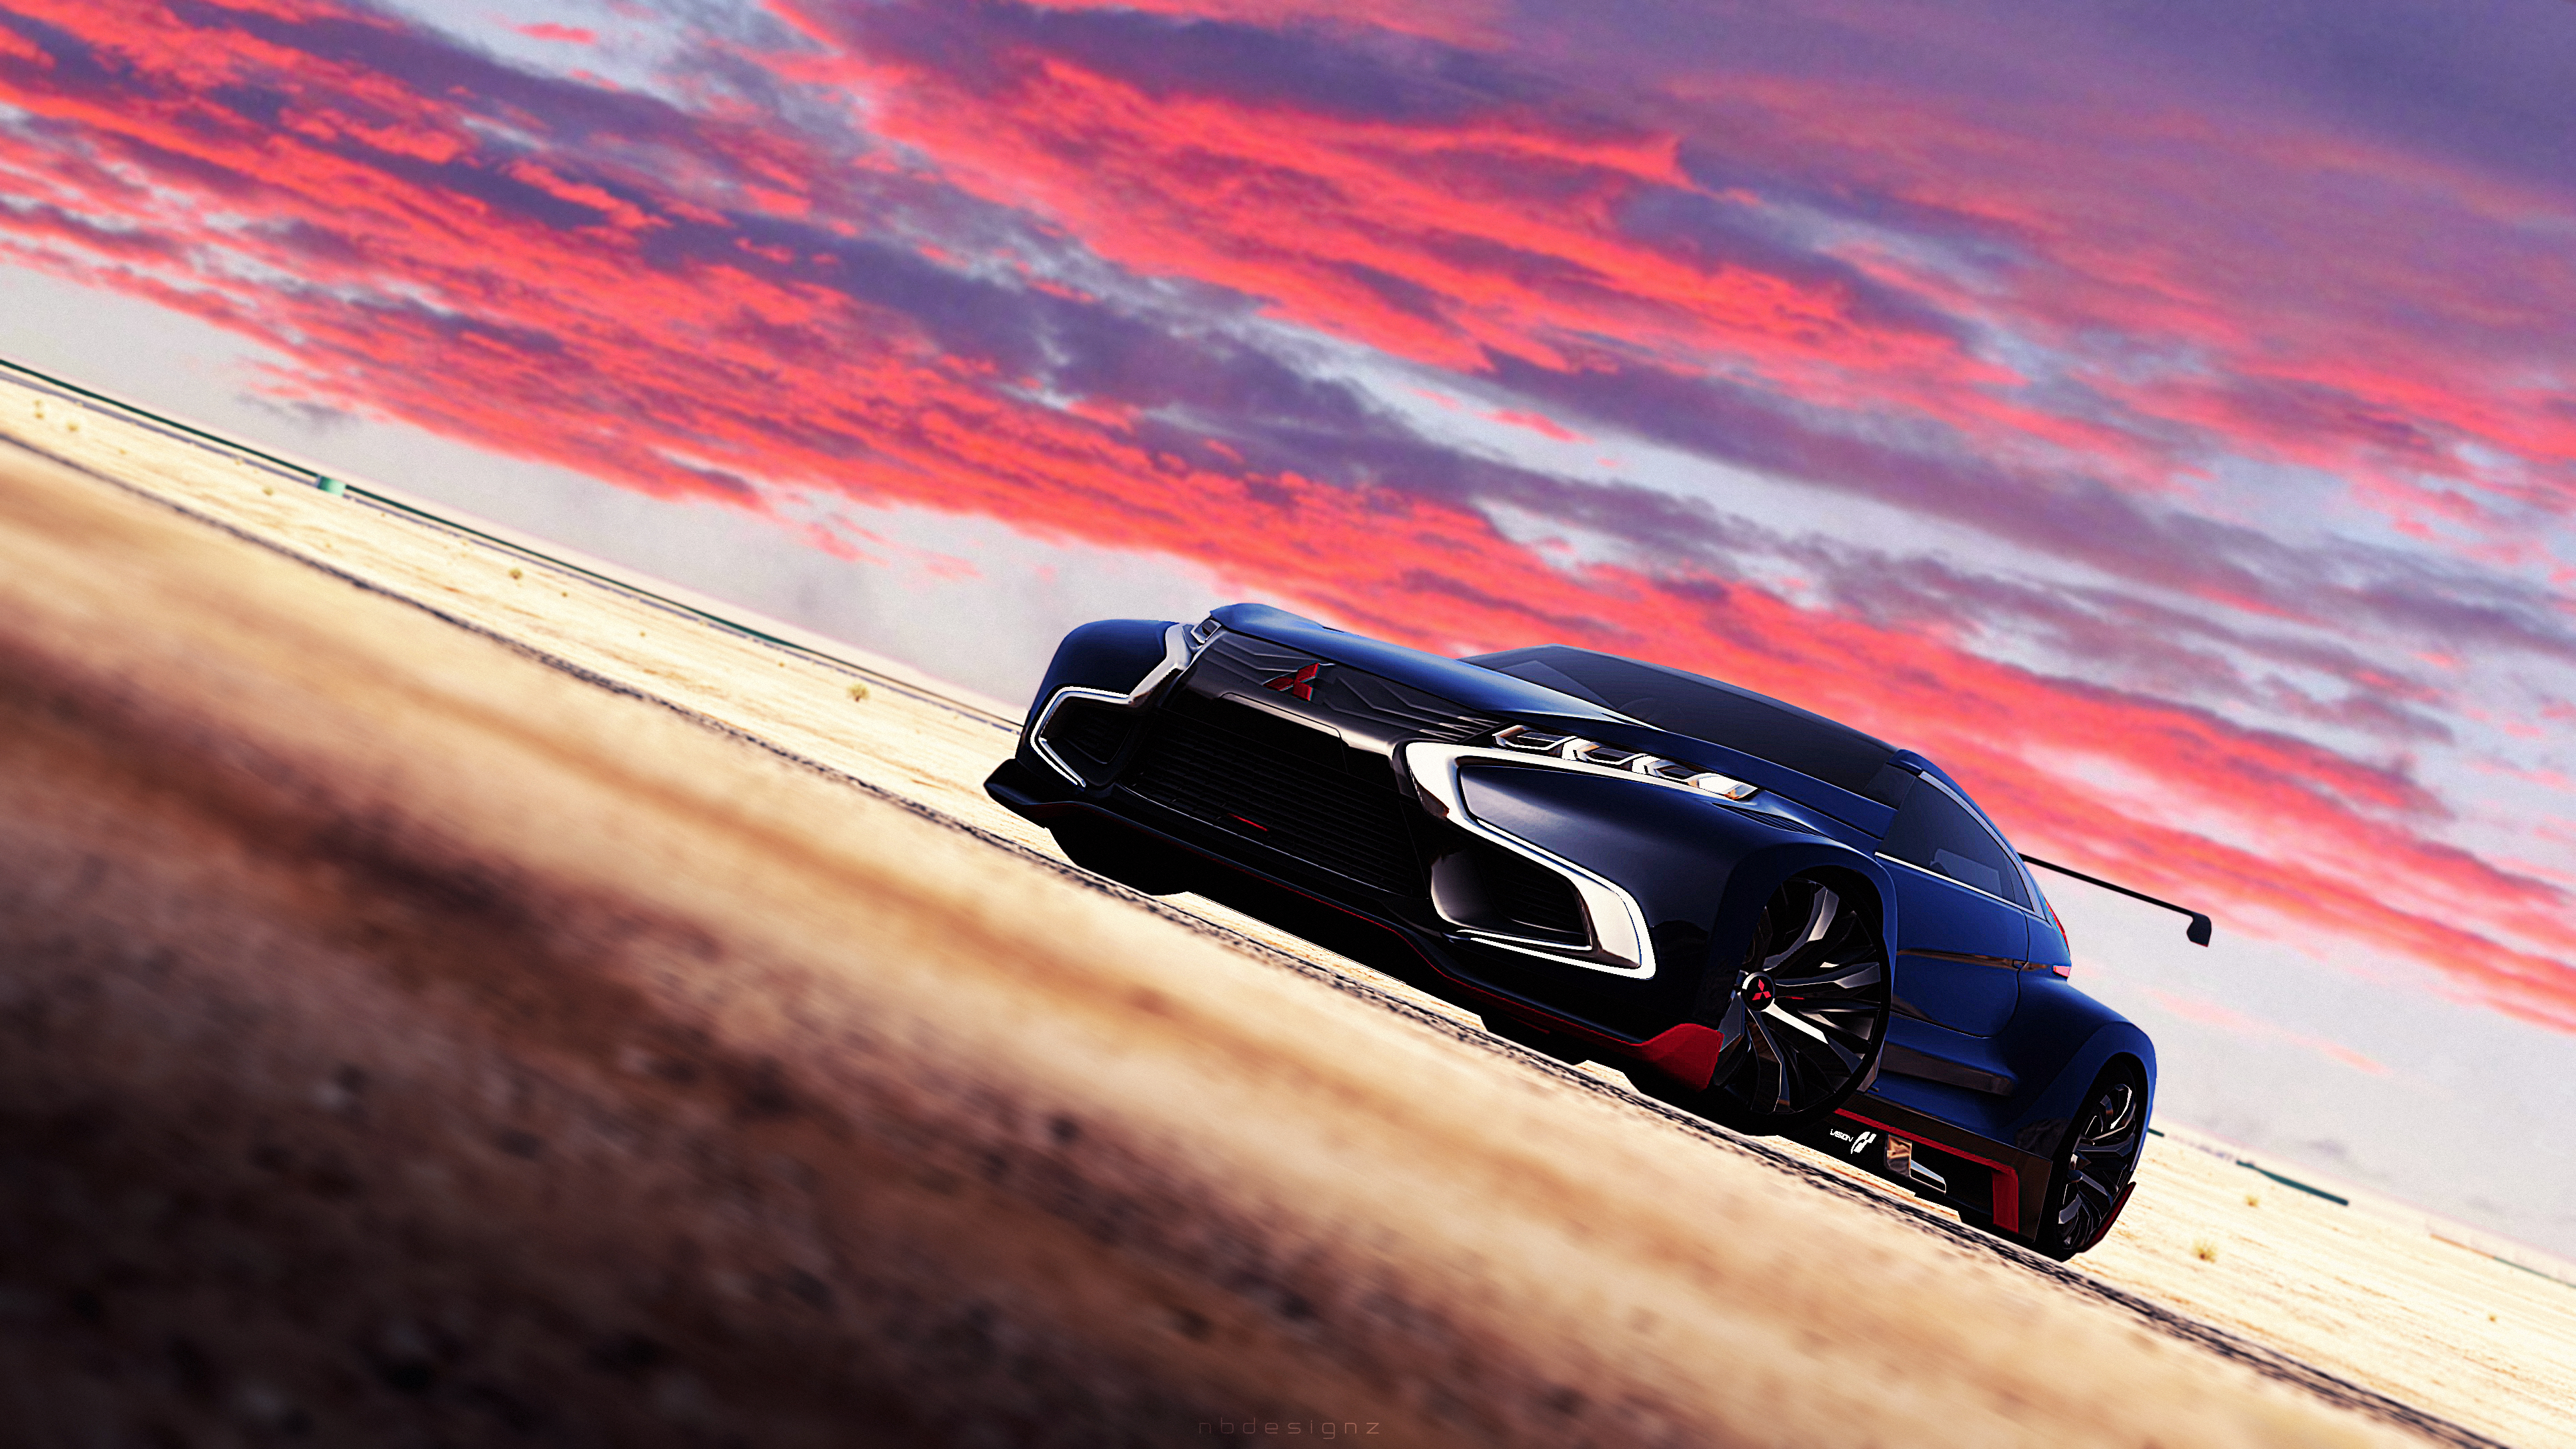 mitsubishi concept xr phev evolution gran turismo 6 wallpaper | hd